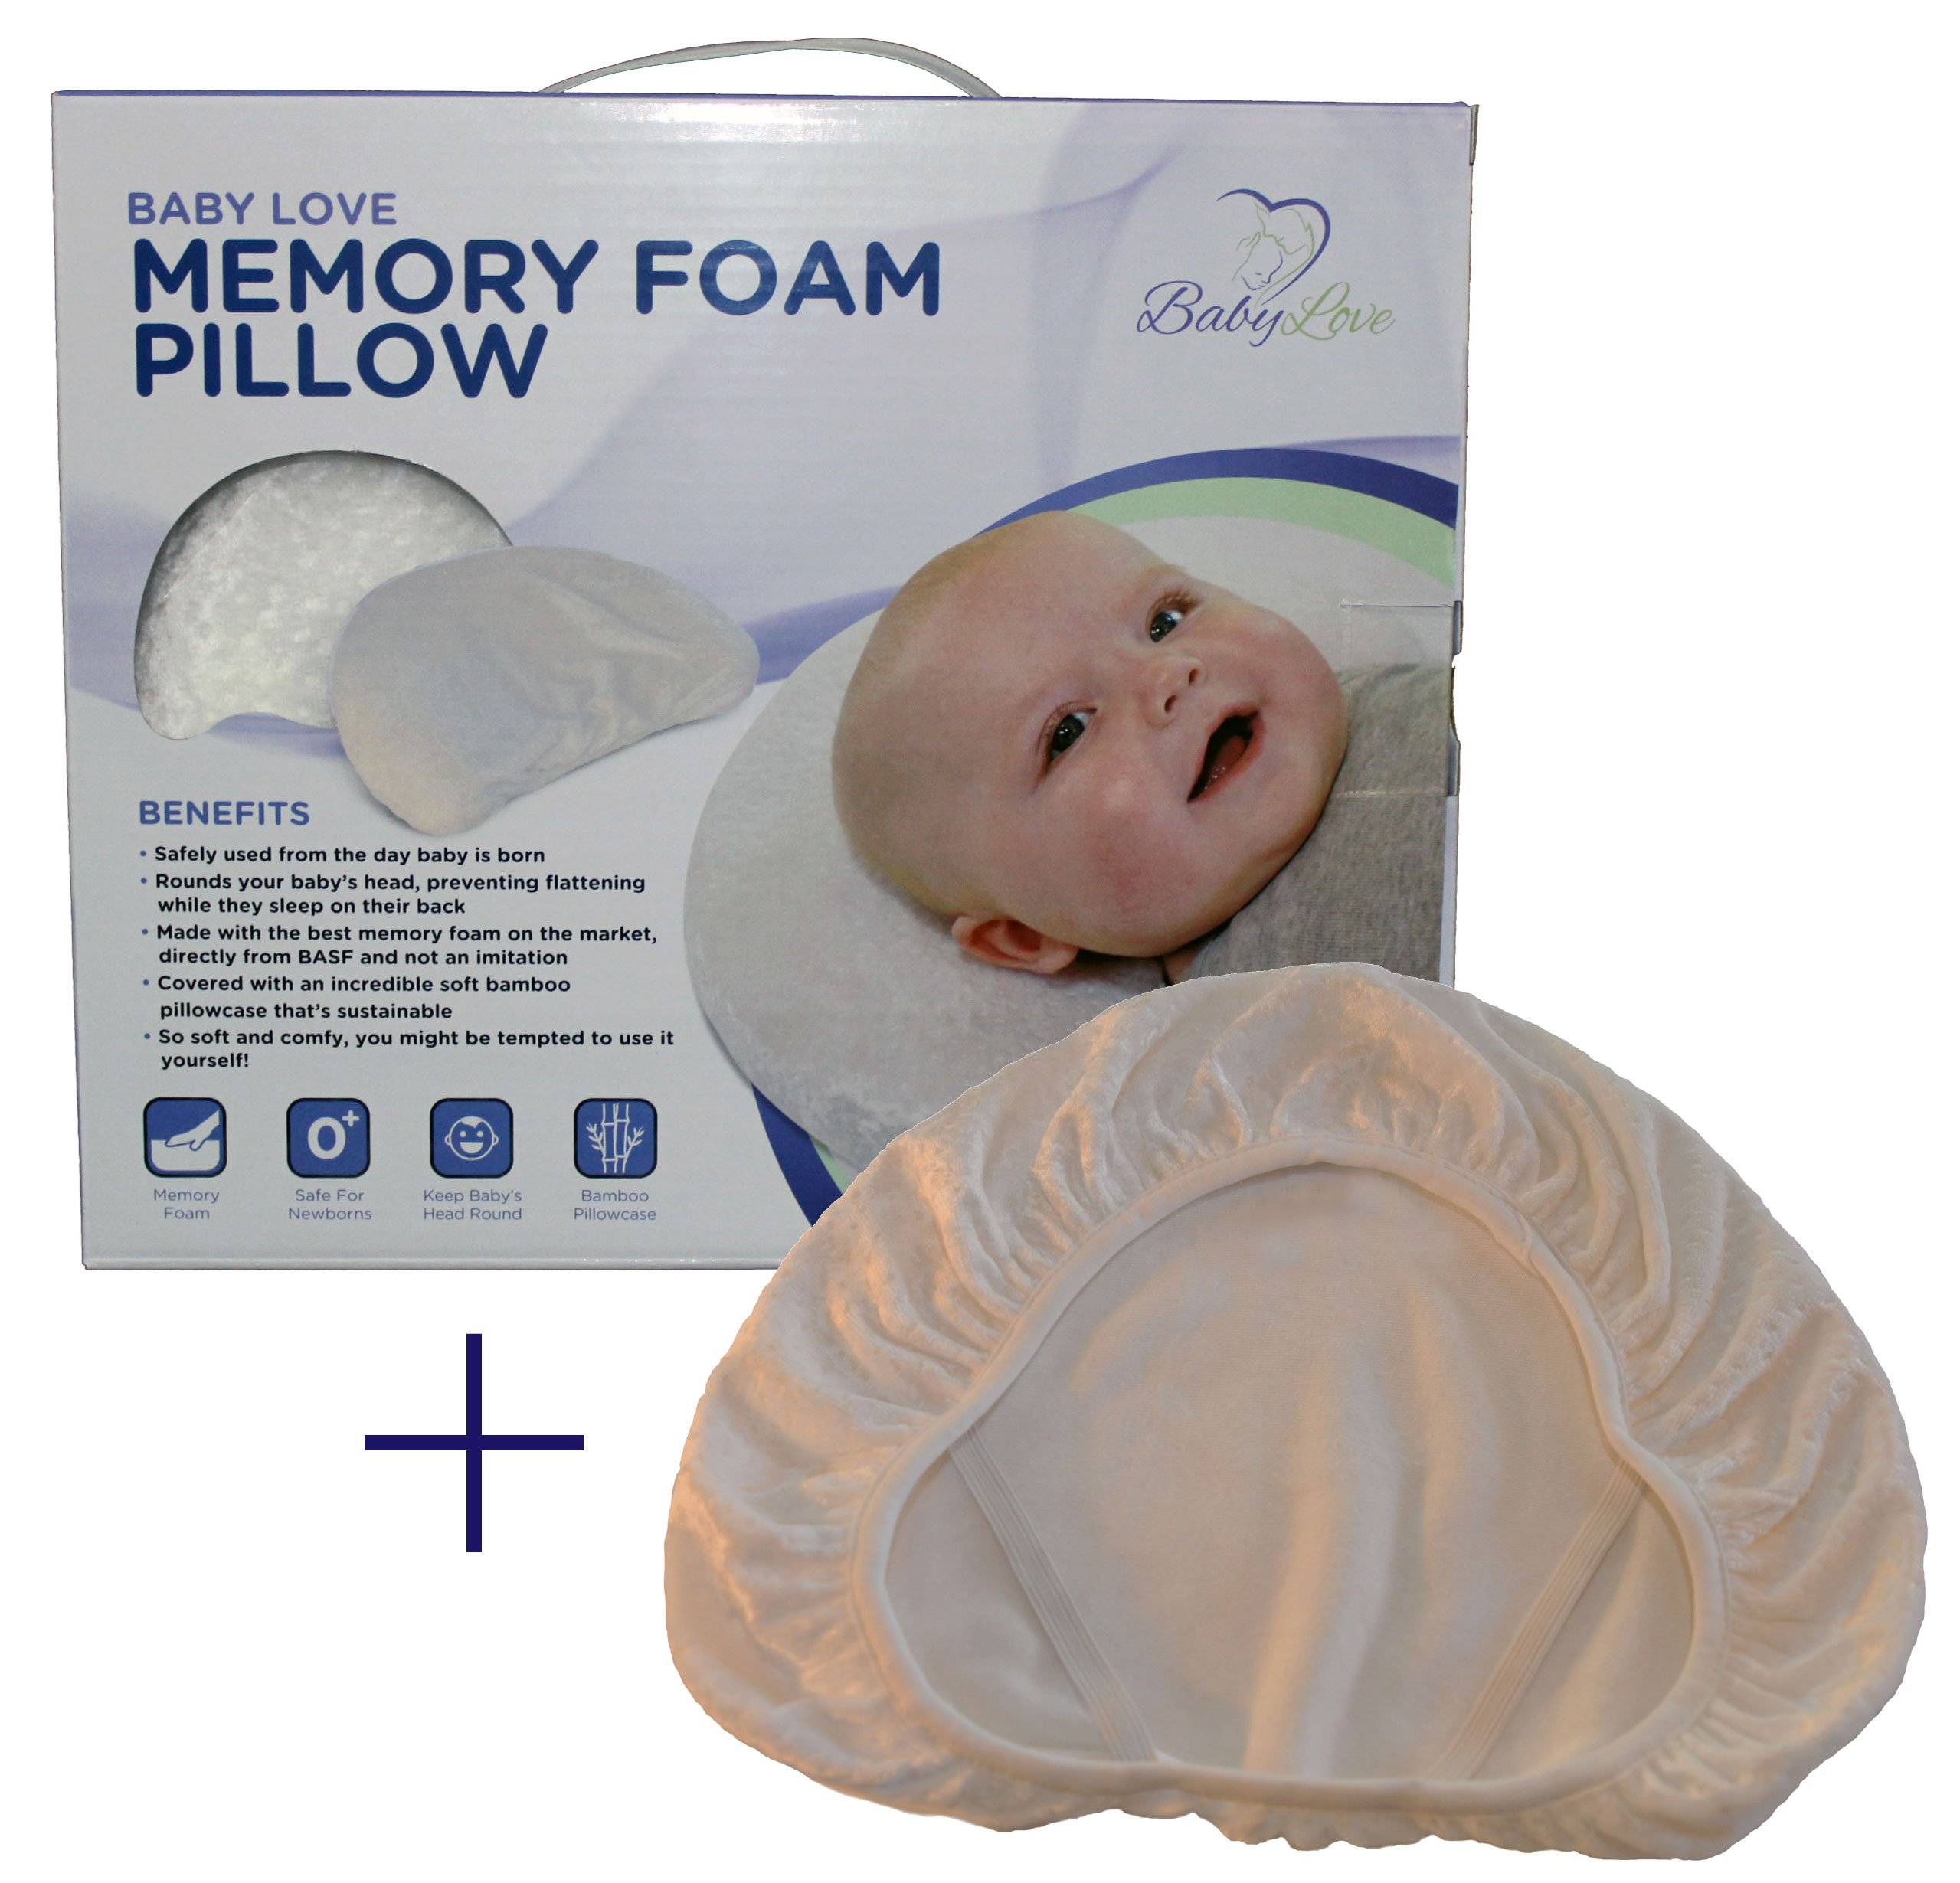 Baby Head Shaping Memory Foam Pillow & Pillowcase. Luxury Baby Shower Gift to KEEP a baby's head round. Prevent Plagiocephaly. (Extra Pillowcase) by Baby Love USA (Image #1)